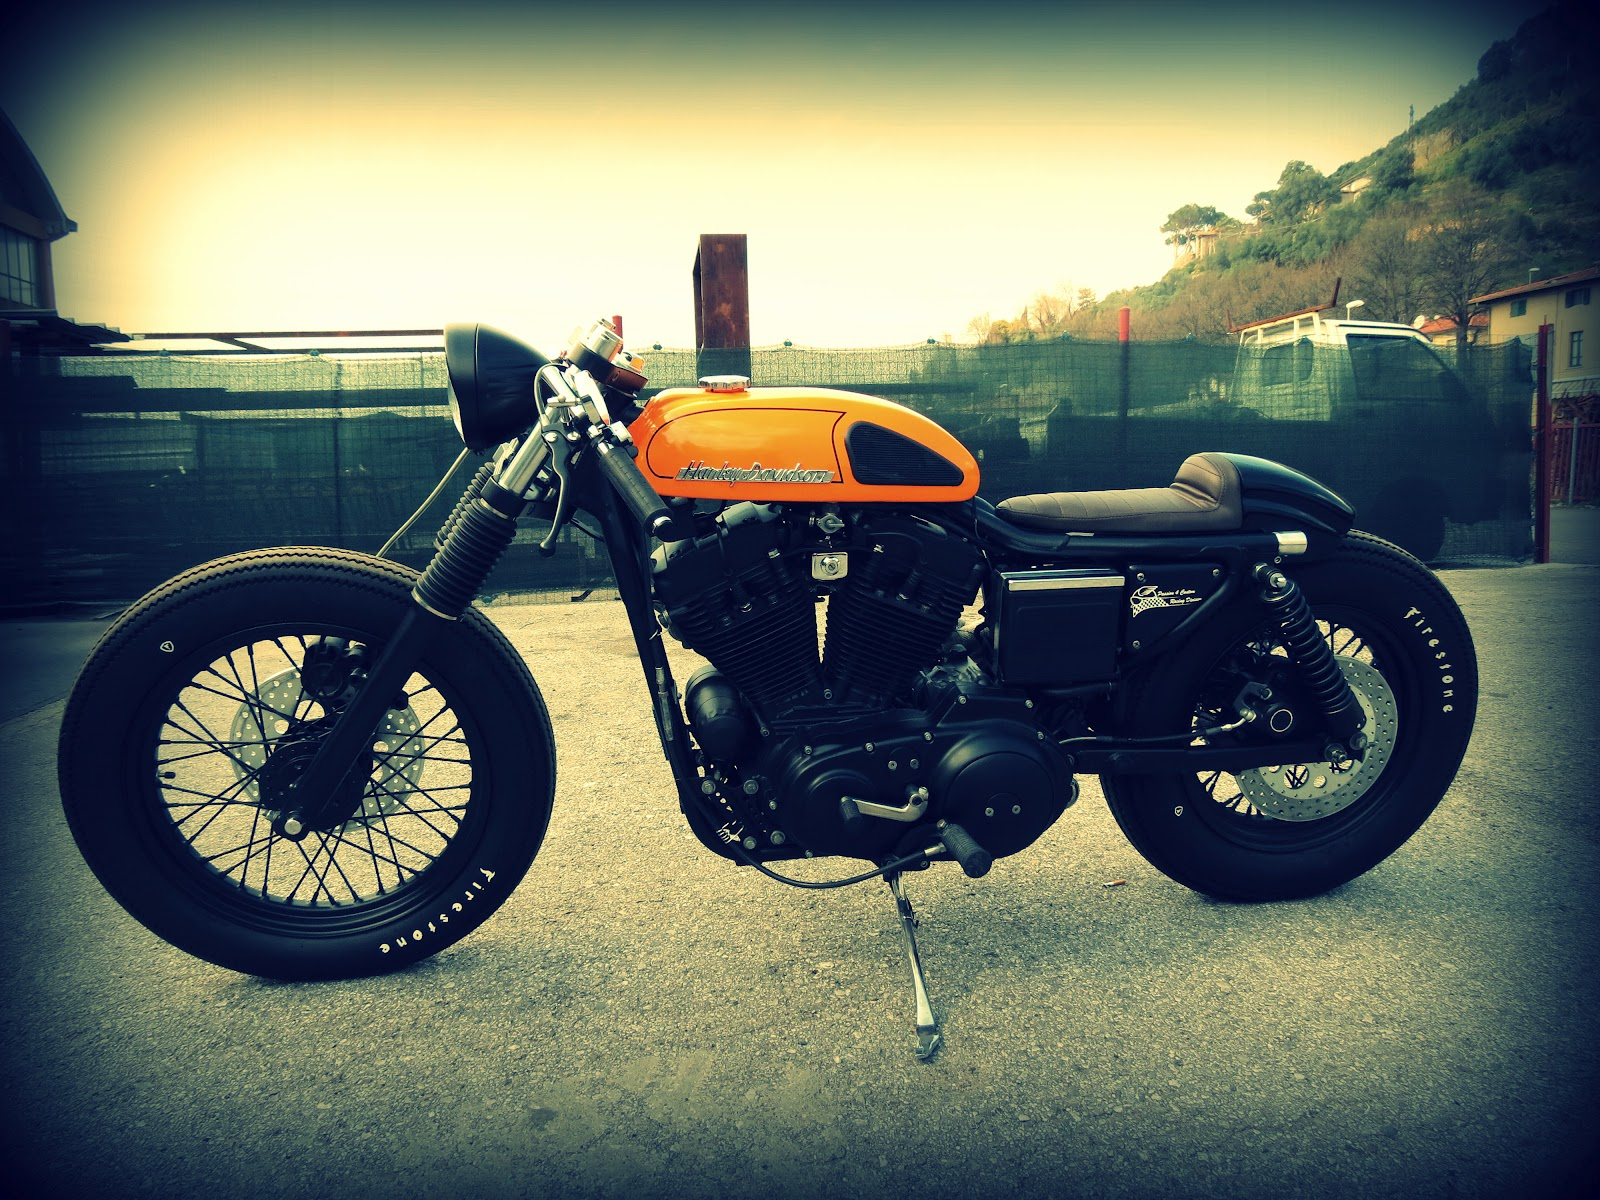 Return of the Cafe Racers - Harley Davidson Sporty 883 Cafe Racer